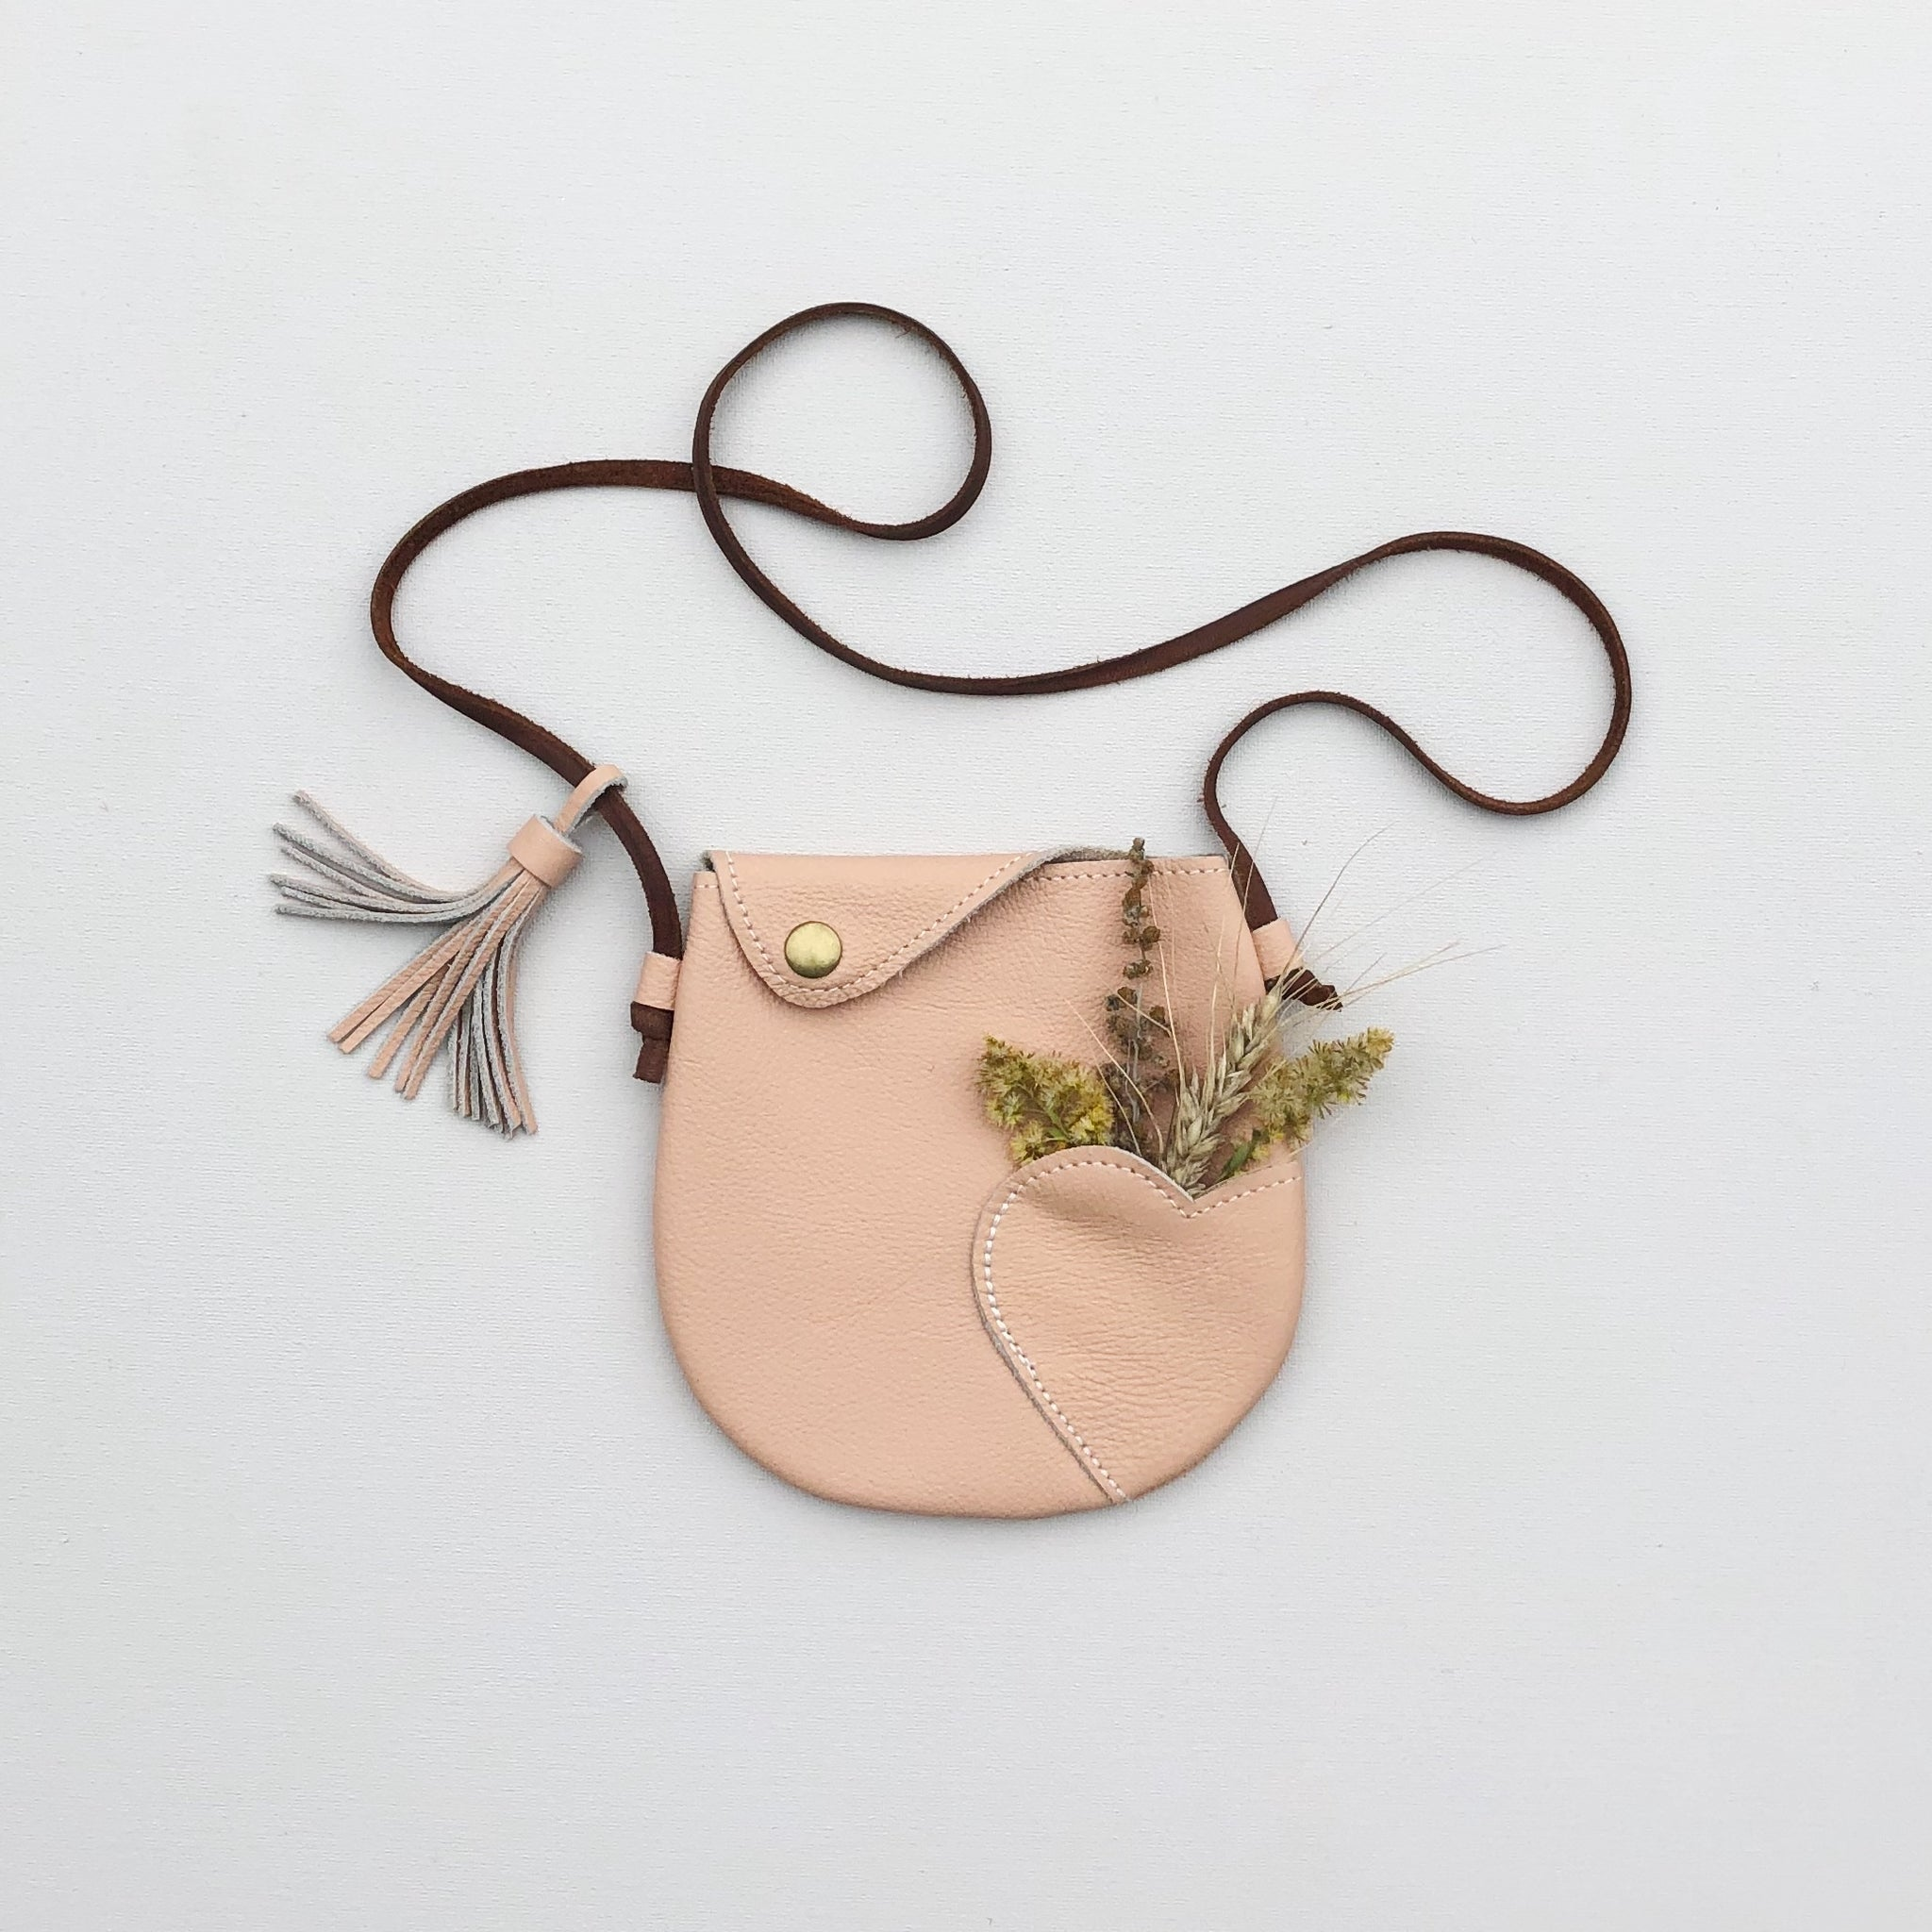 VINTAGE HEART PURSE | in farrow